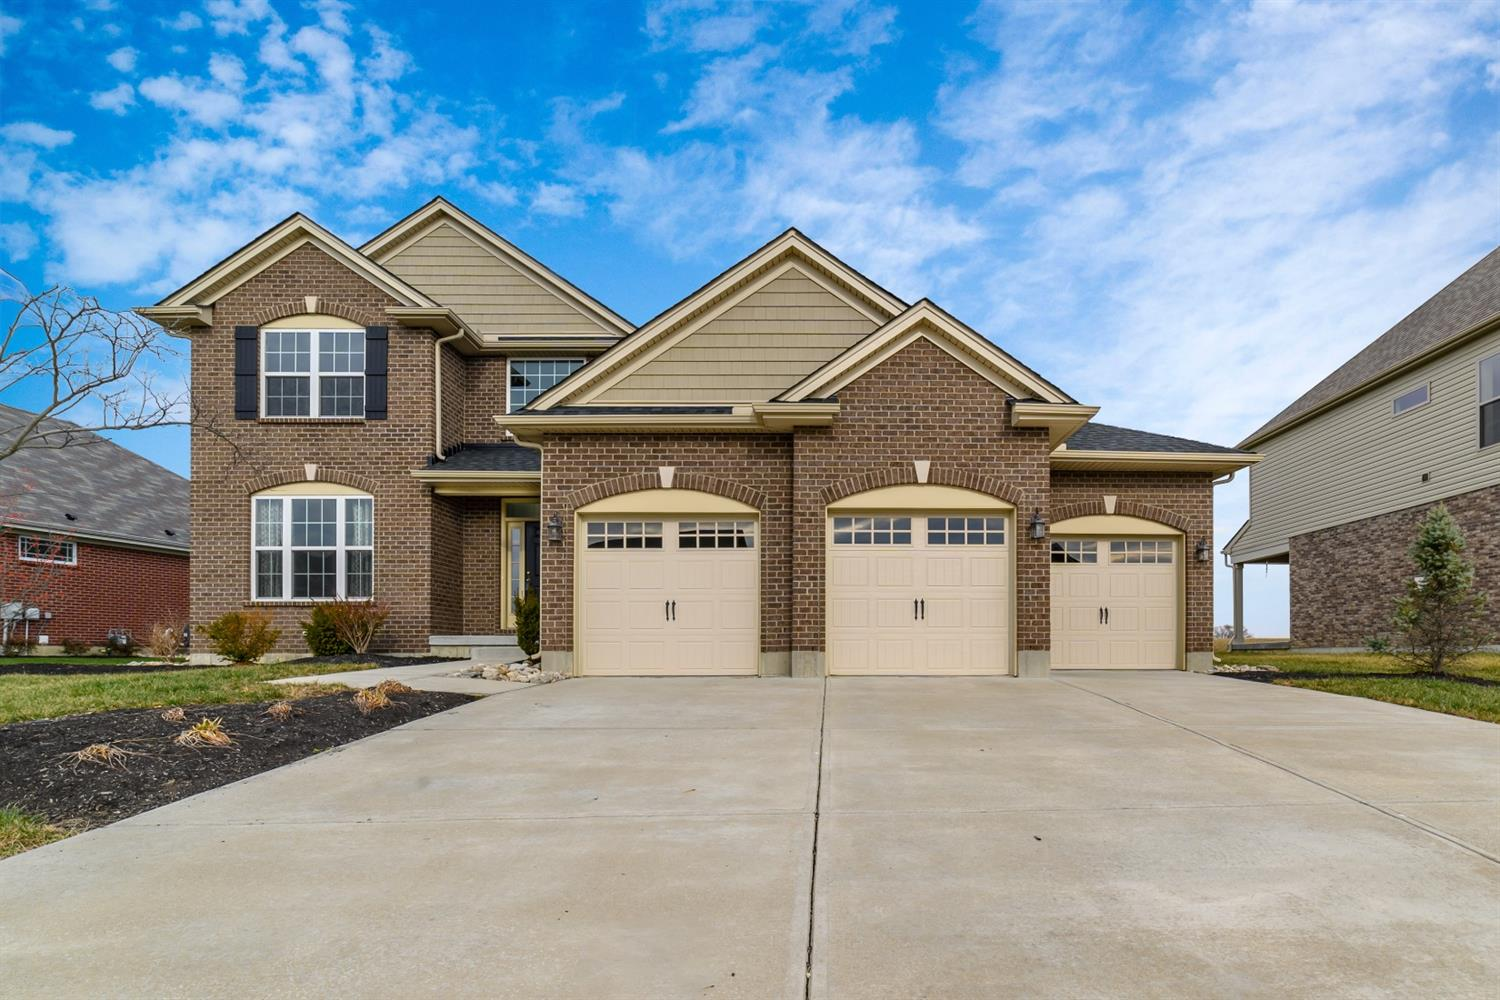 Property for sale at 4606 Osprey Pointe Drive, Liberty Twp,  Ohio 45011